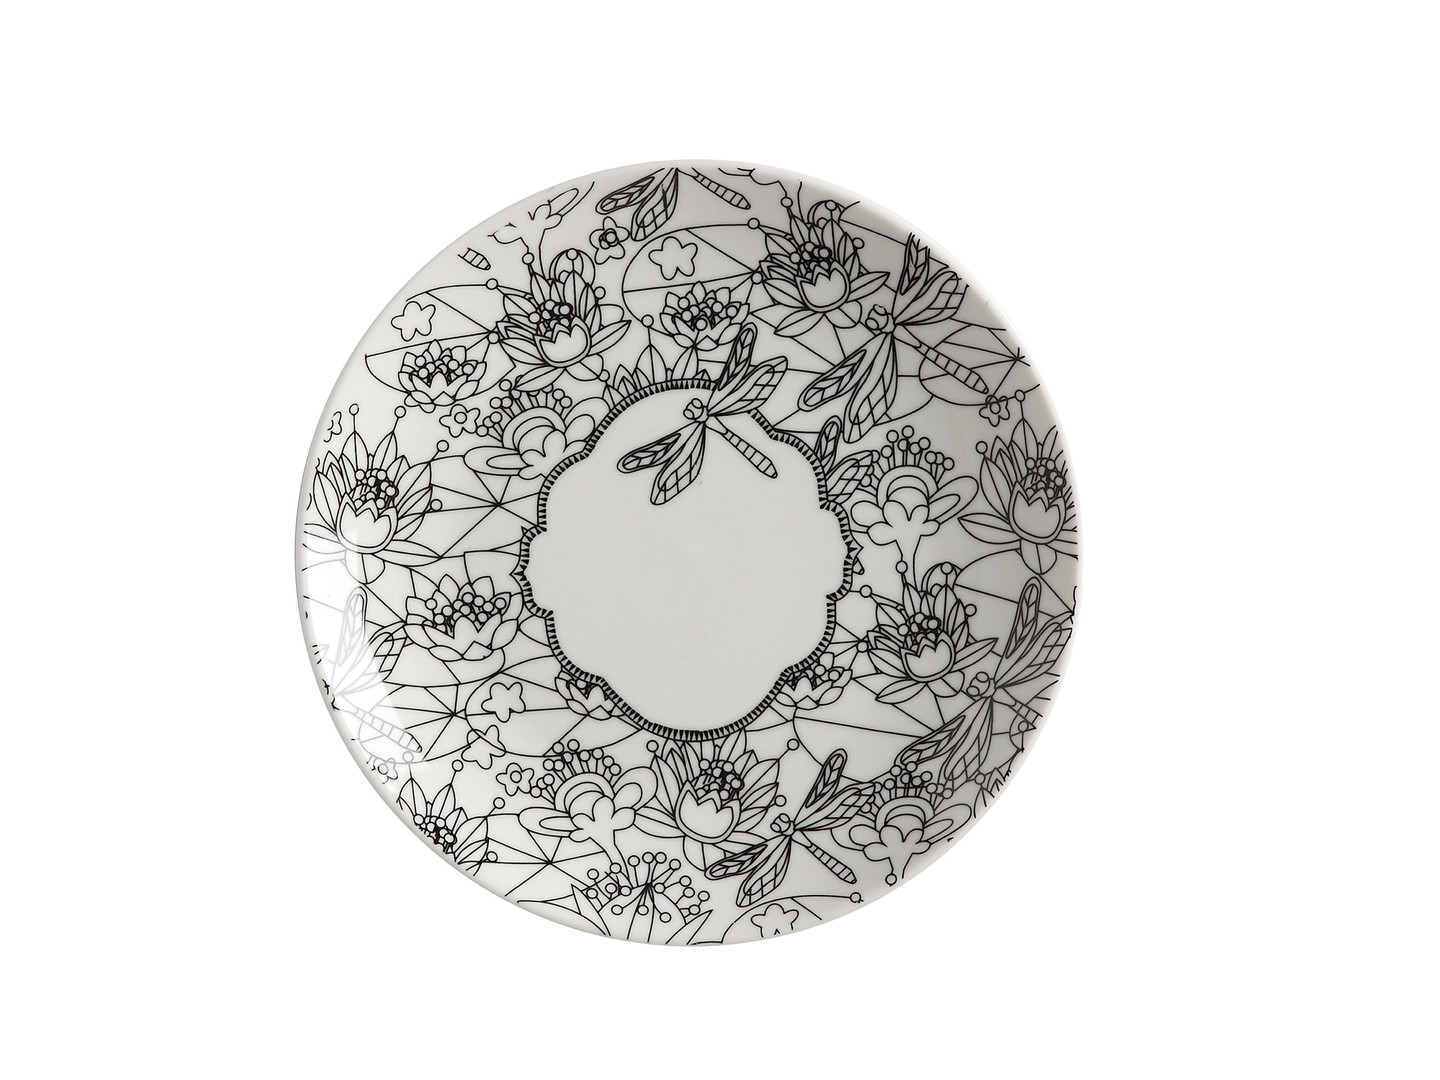 Mindfulness Messages Plate Dragonfly 19cm